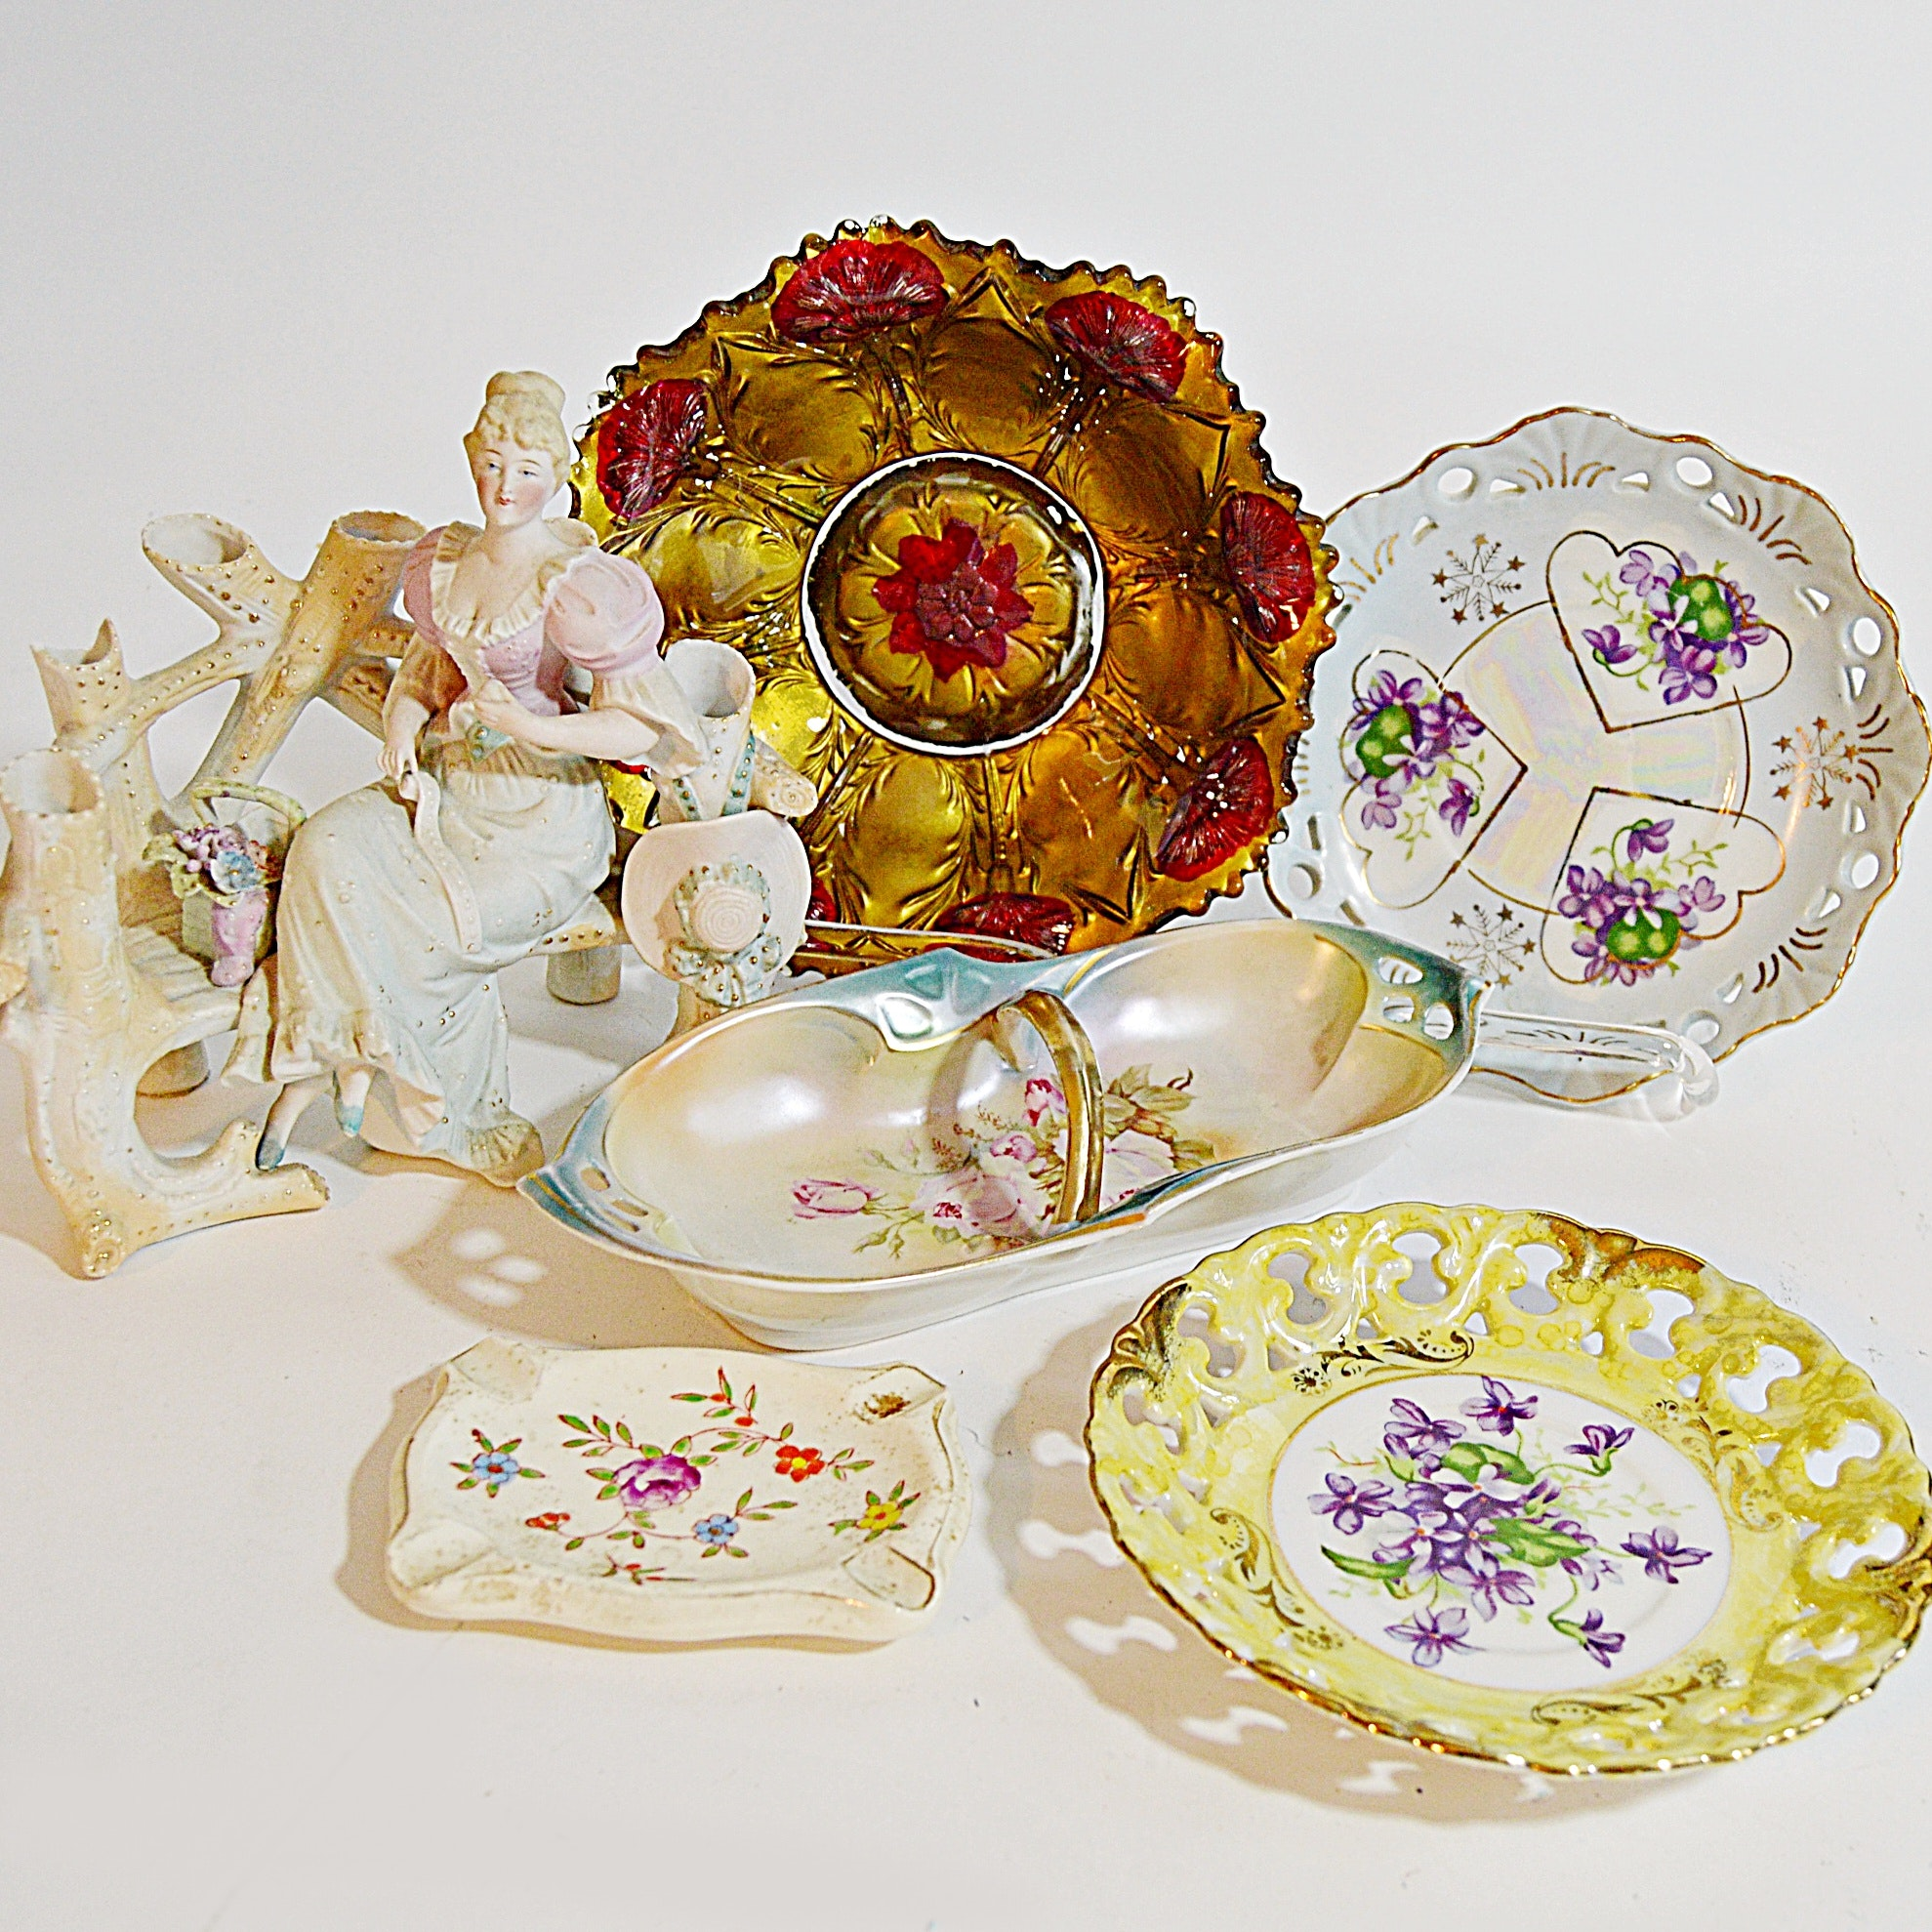 Antique Porcelain and Carnival Glass Plates